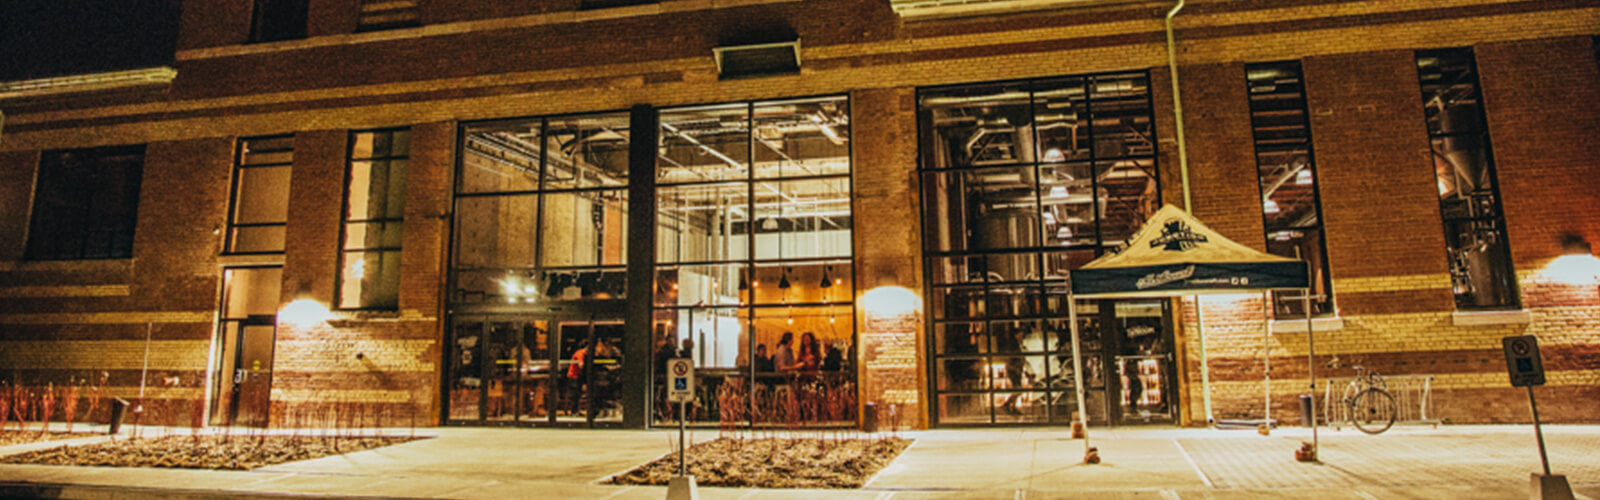 Night-time photo of large industrial looking brick building with several large windows. The interior is well lit, and inside one of the windows, a brewery tank is visible with a promotional tent sitting outside the window. Inside the other windows, a possible seating area with glimpses of people sitting and standing around.